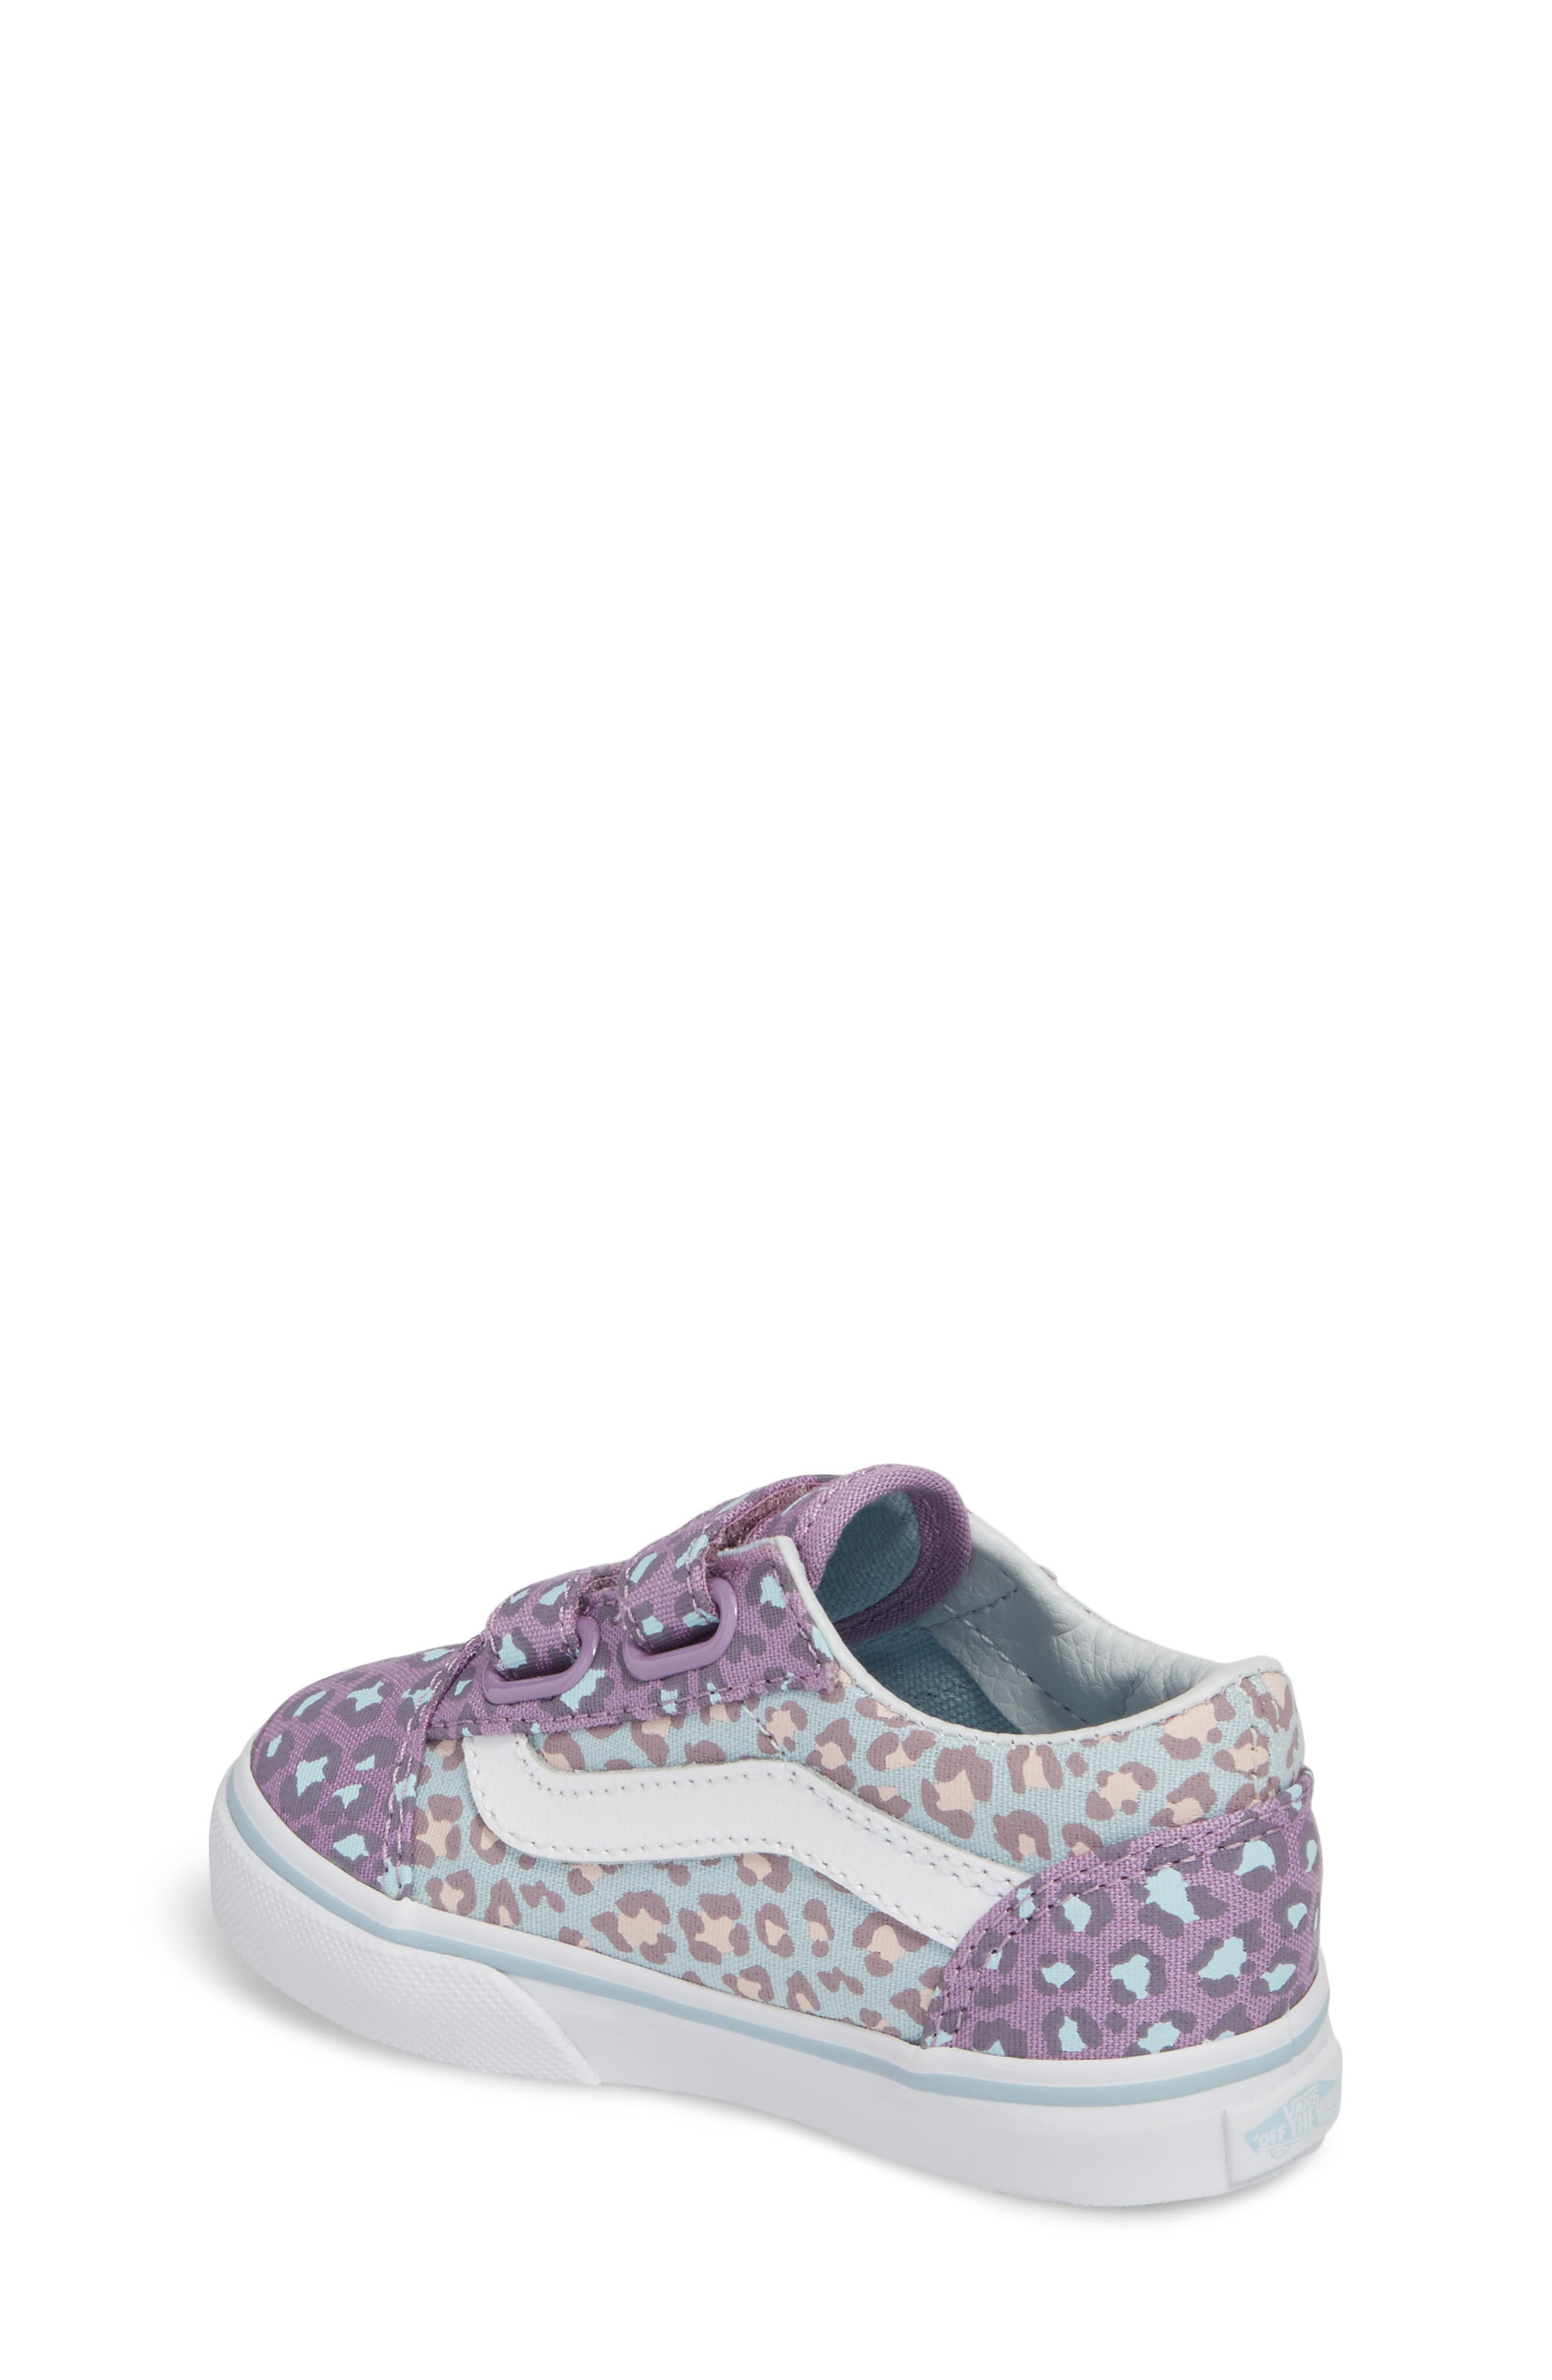 'Old Skool V' Sneaker,                             Alternate thumbnail 2, color,                             Blue/ Orchid Leopard